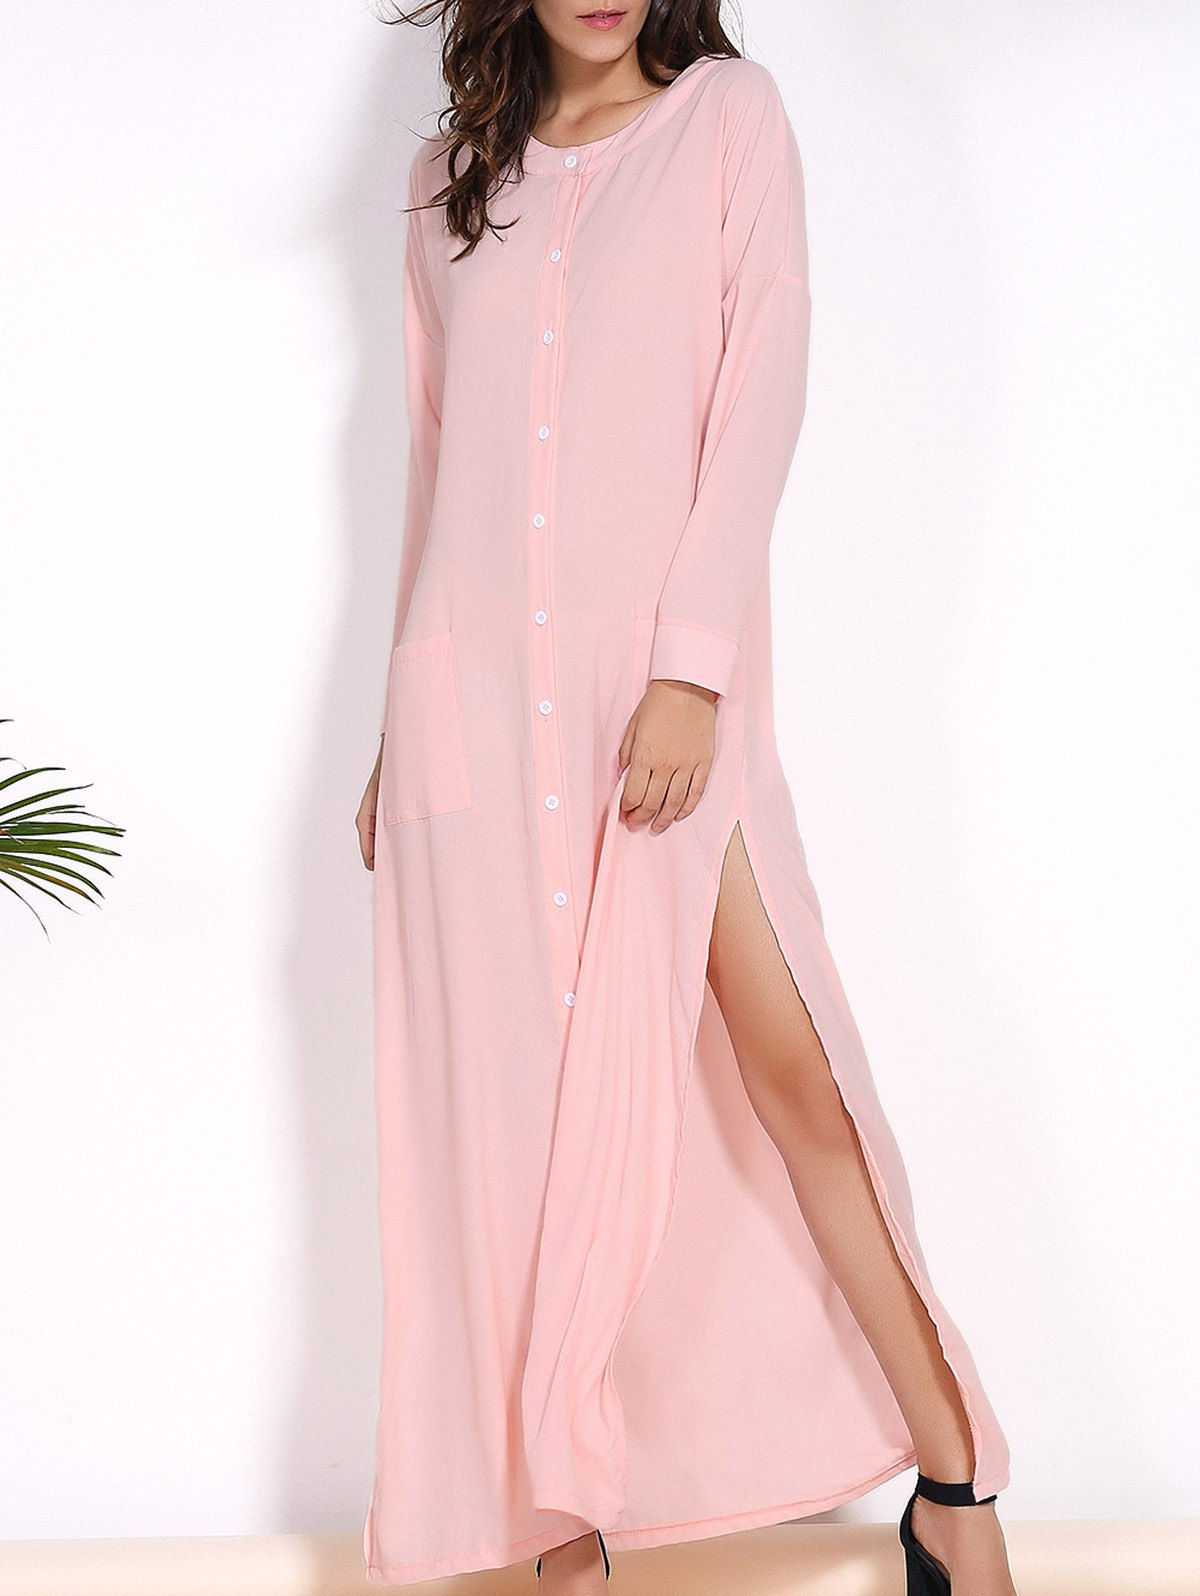 Trendy Round Collar Long Sleeve Pink High Slit Women's Cover-Up Dress - PINK L